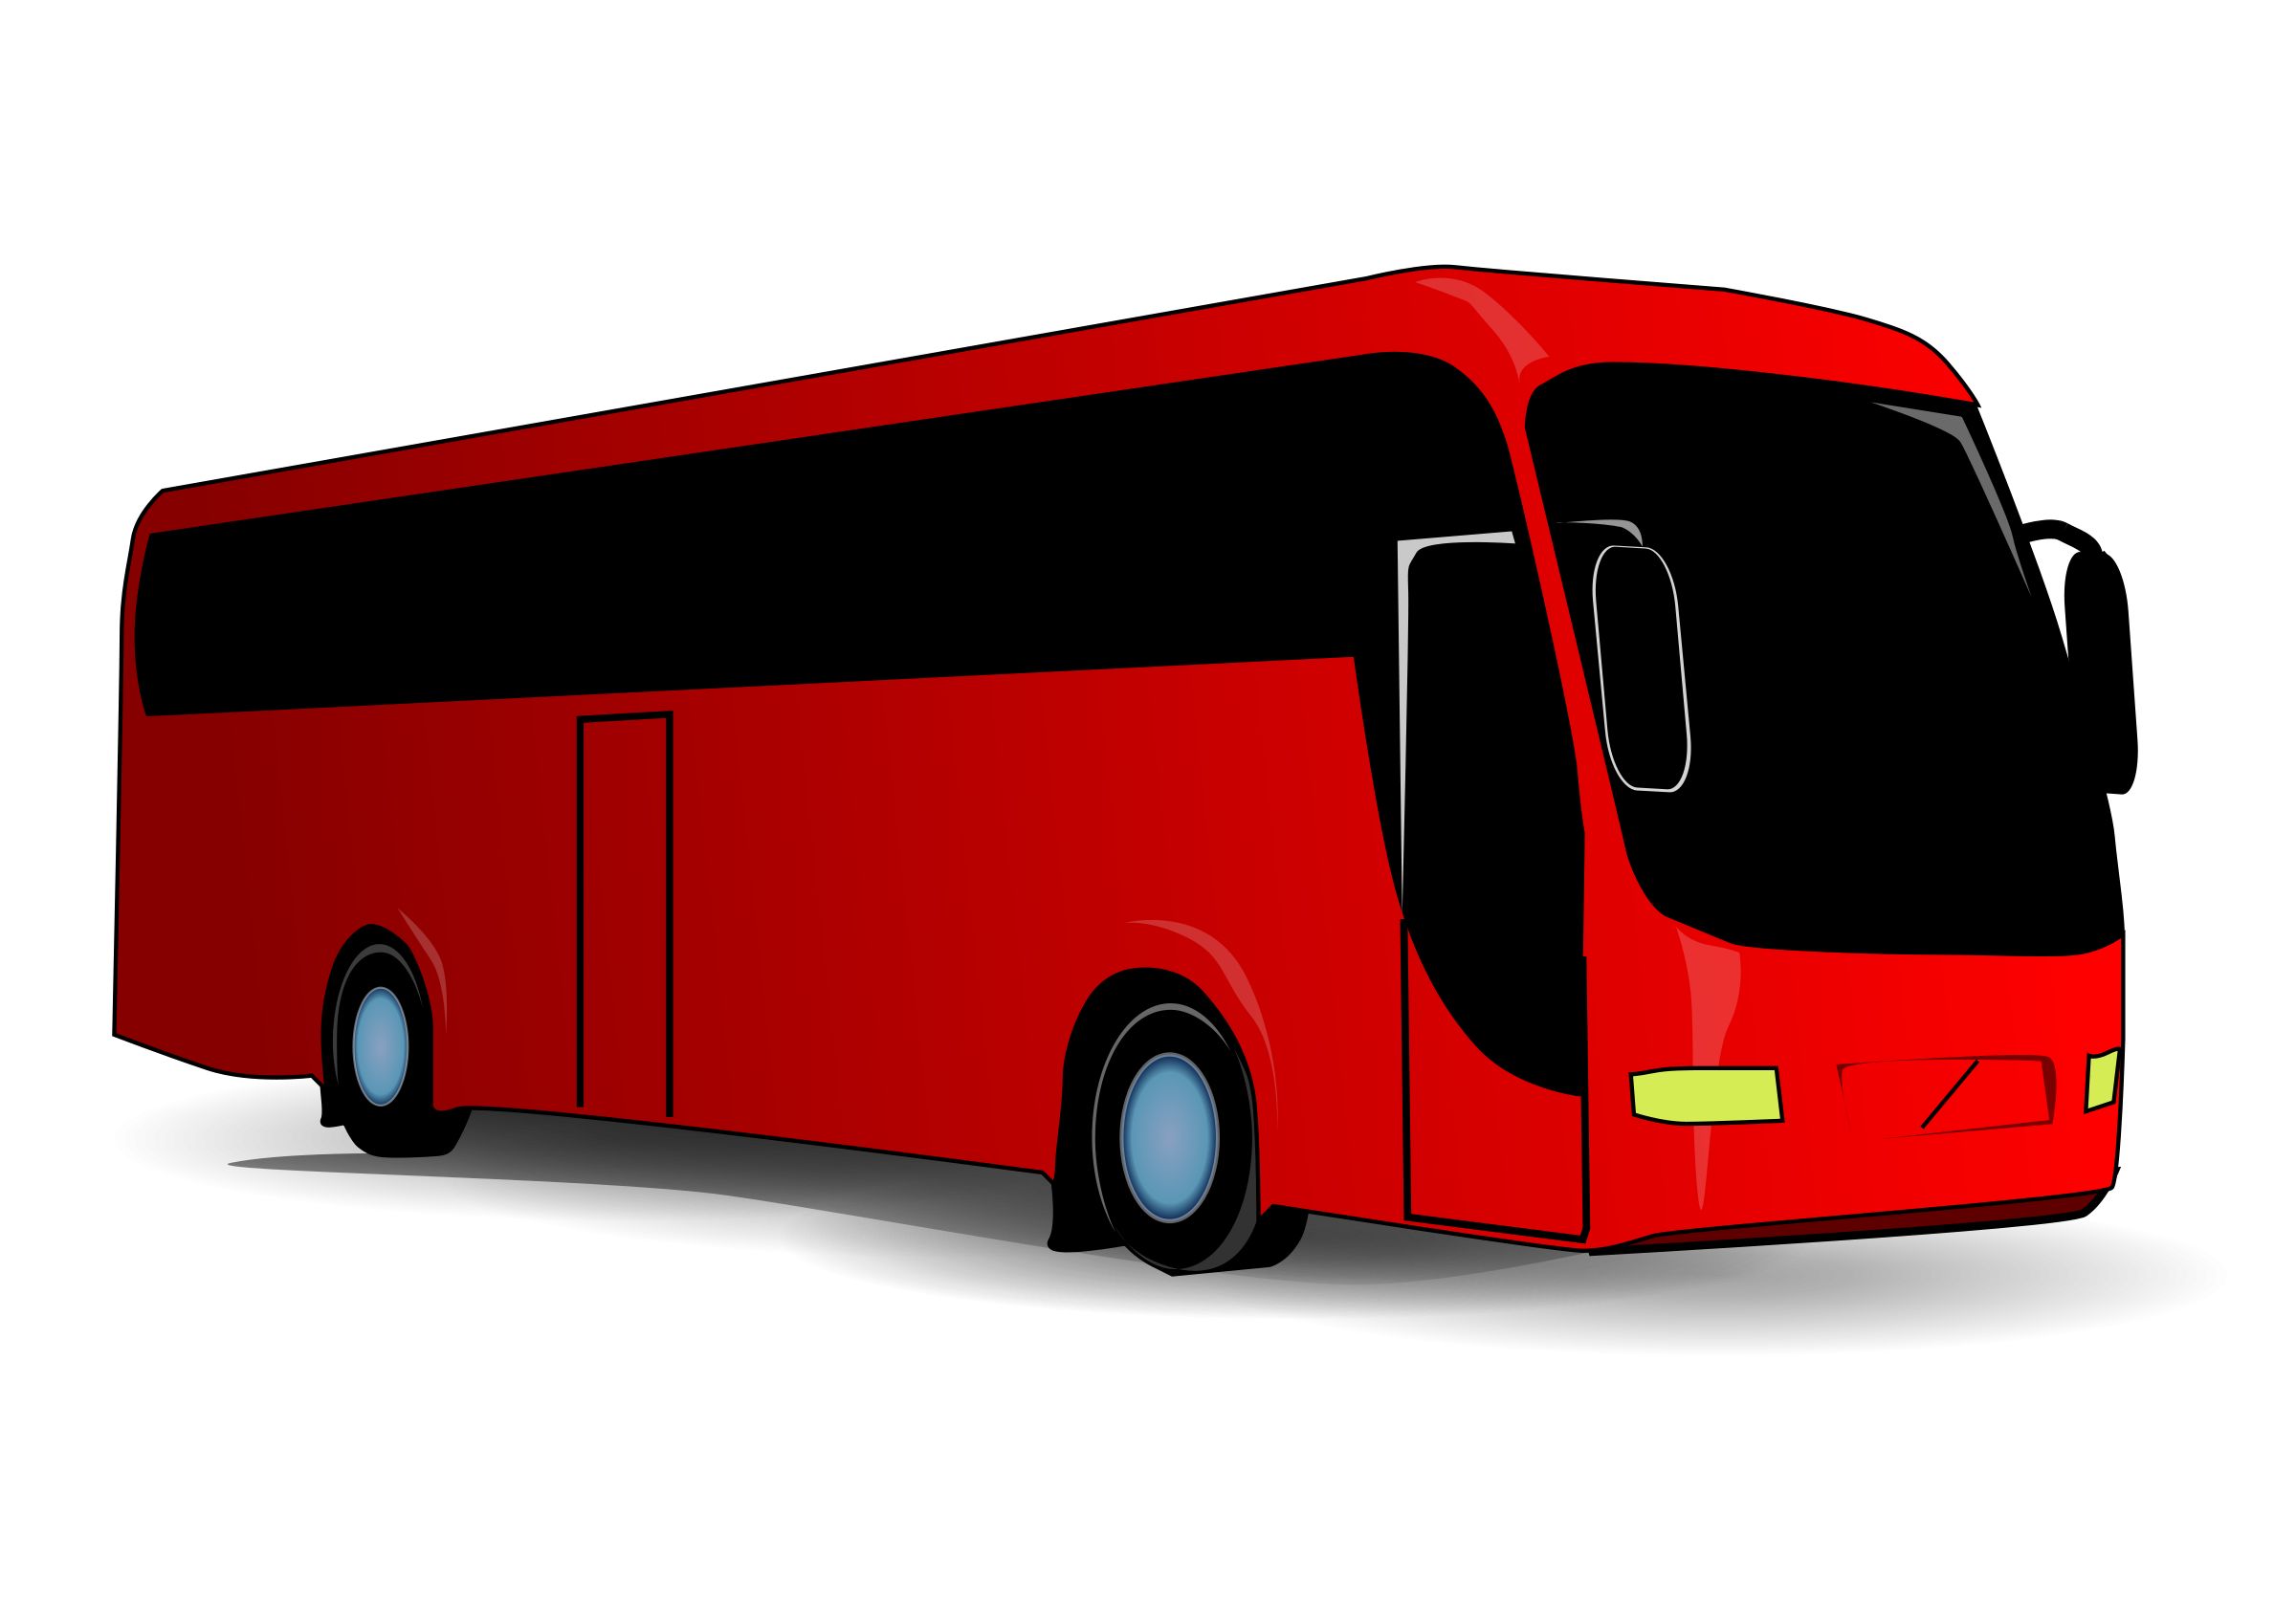 2400x1697 Bus Png Images Free Download